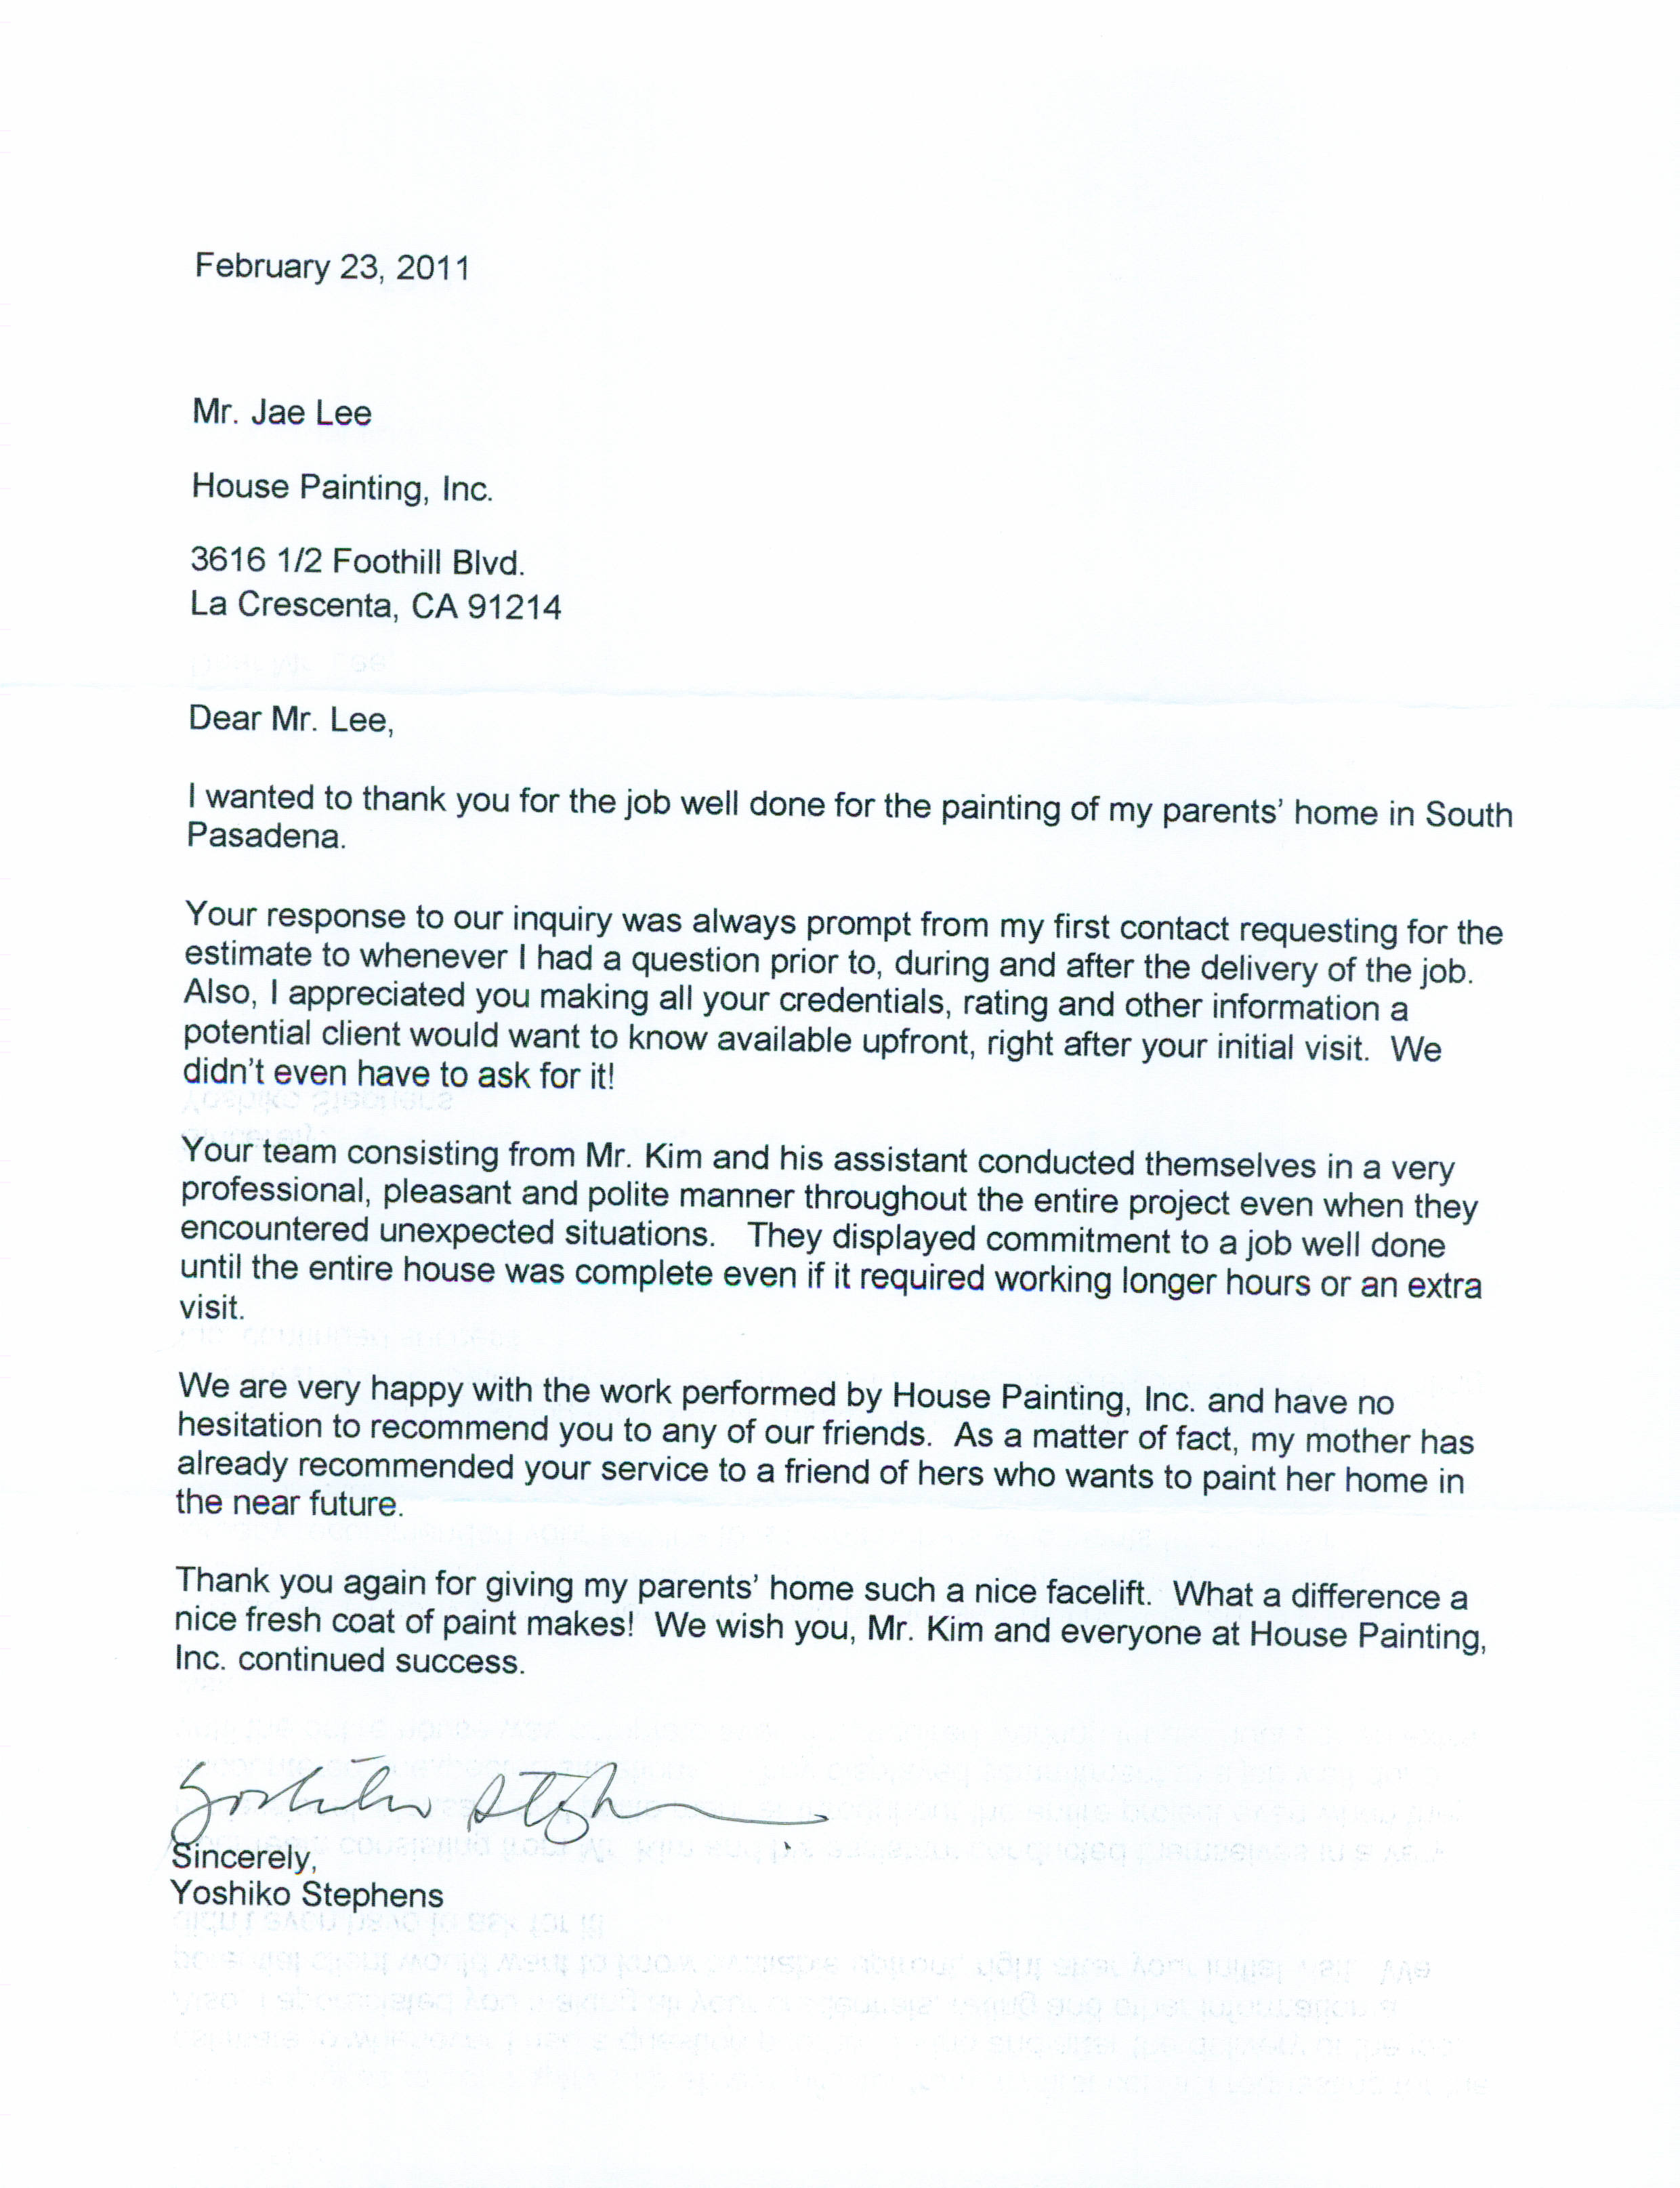 happy letter from customer indiana av south pasadena ca 91030 a